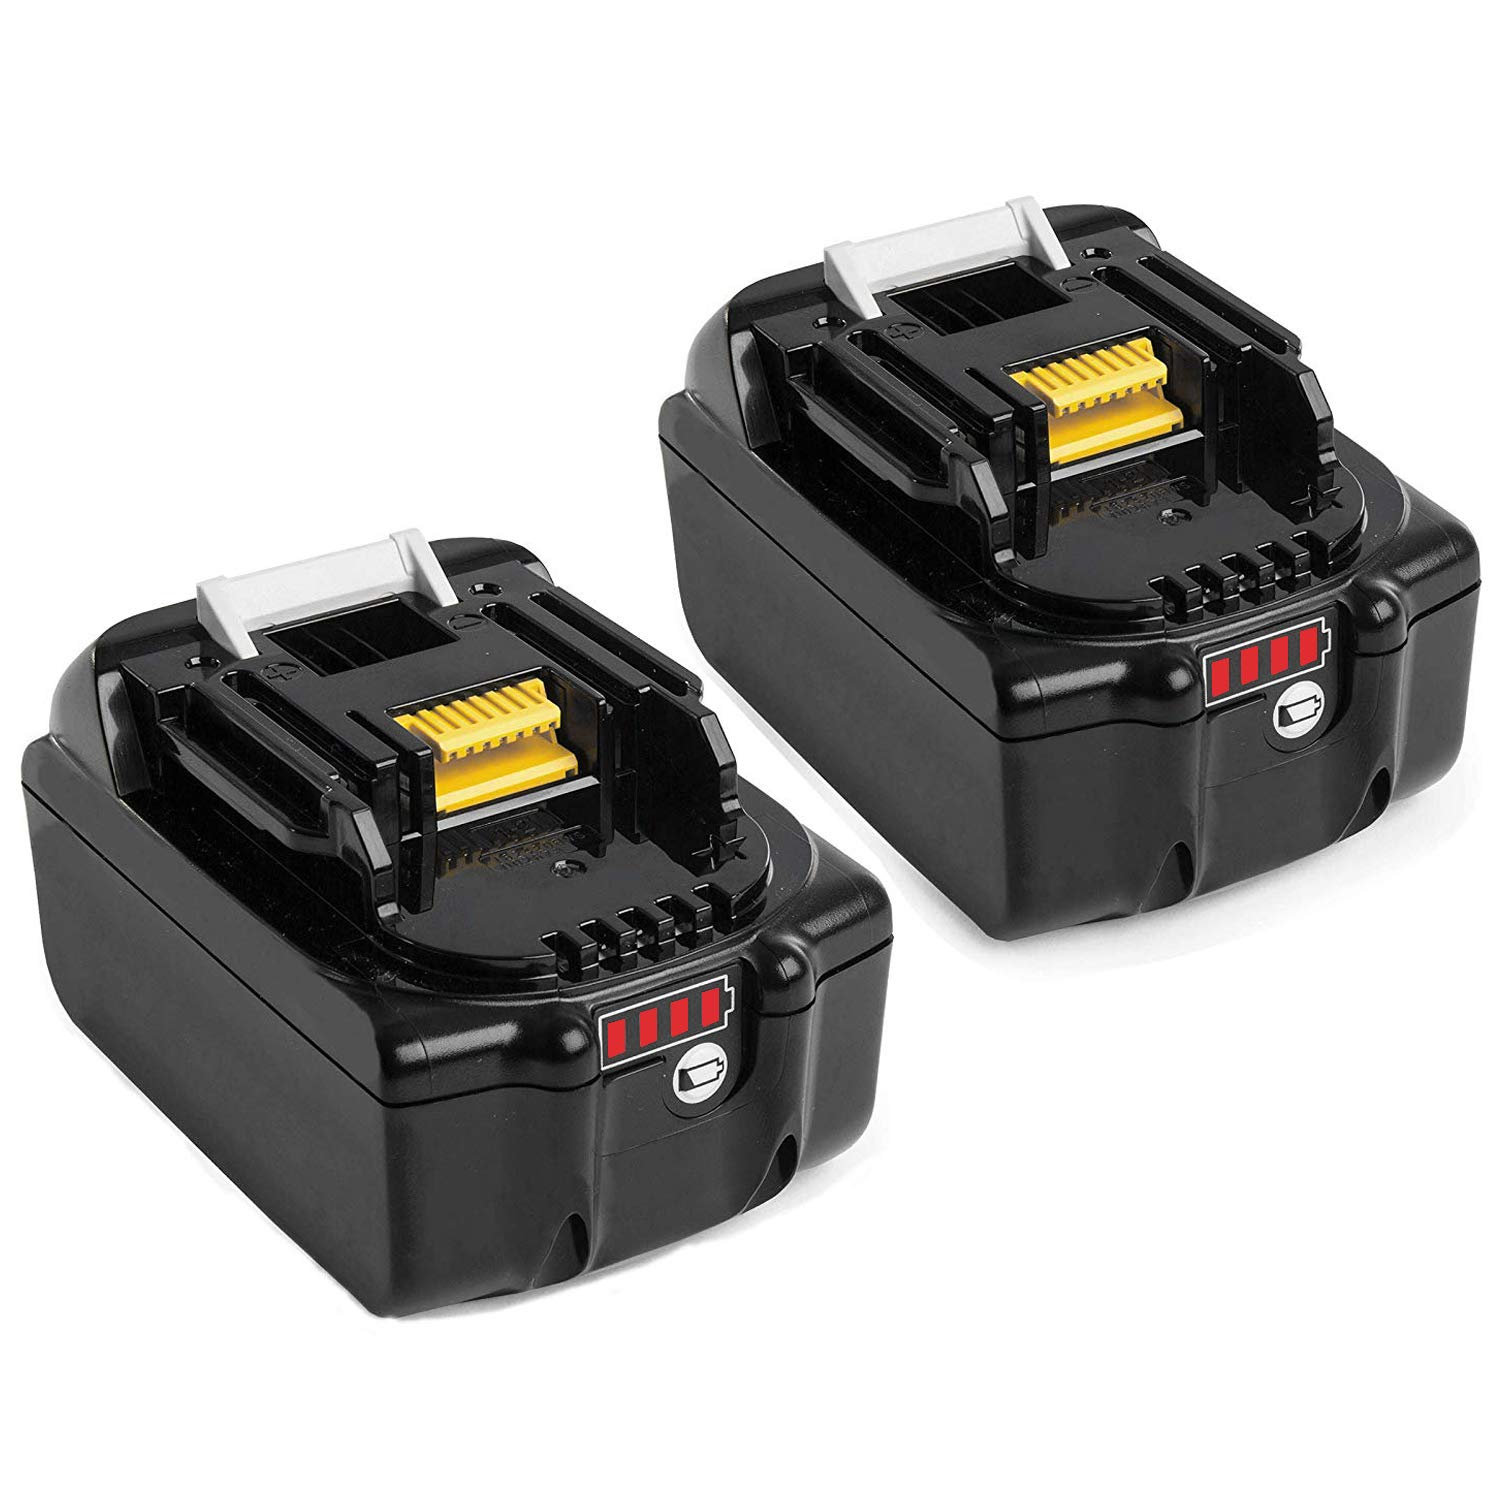 2X Reoben BL1850B 18V 5.0 Ah Lithium Replacement Battery Pack for Makita BL1850B BL1850 BL1840 BL1830 BL1815 BL1835 BL1845 LXT-400 Cordless Power Tools with Indicator